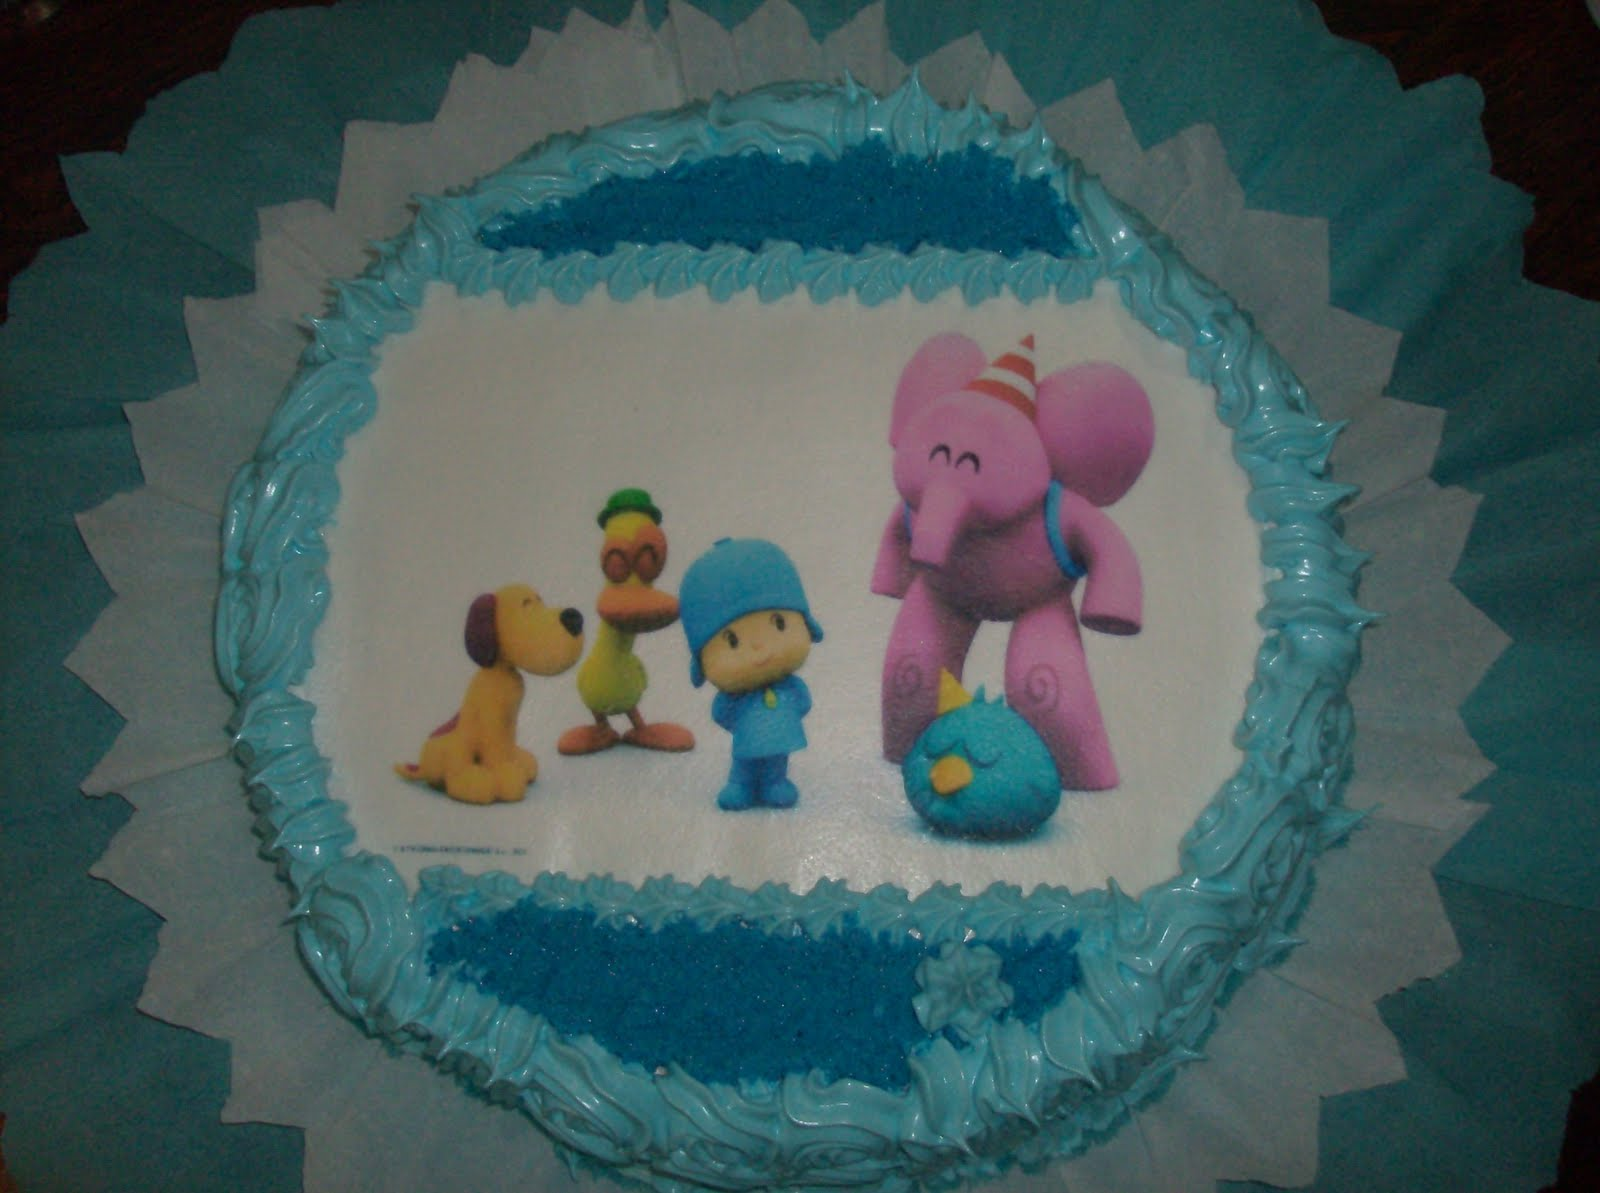 ... , Pasapalos, etc: Torta de Pocoyo decorada con Merengue Italiano